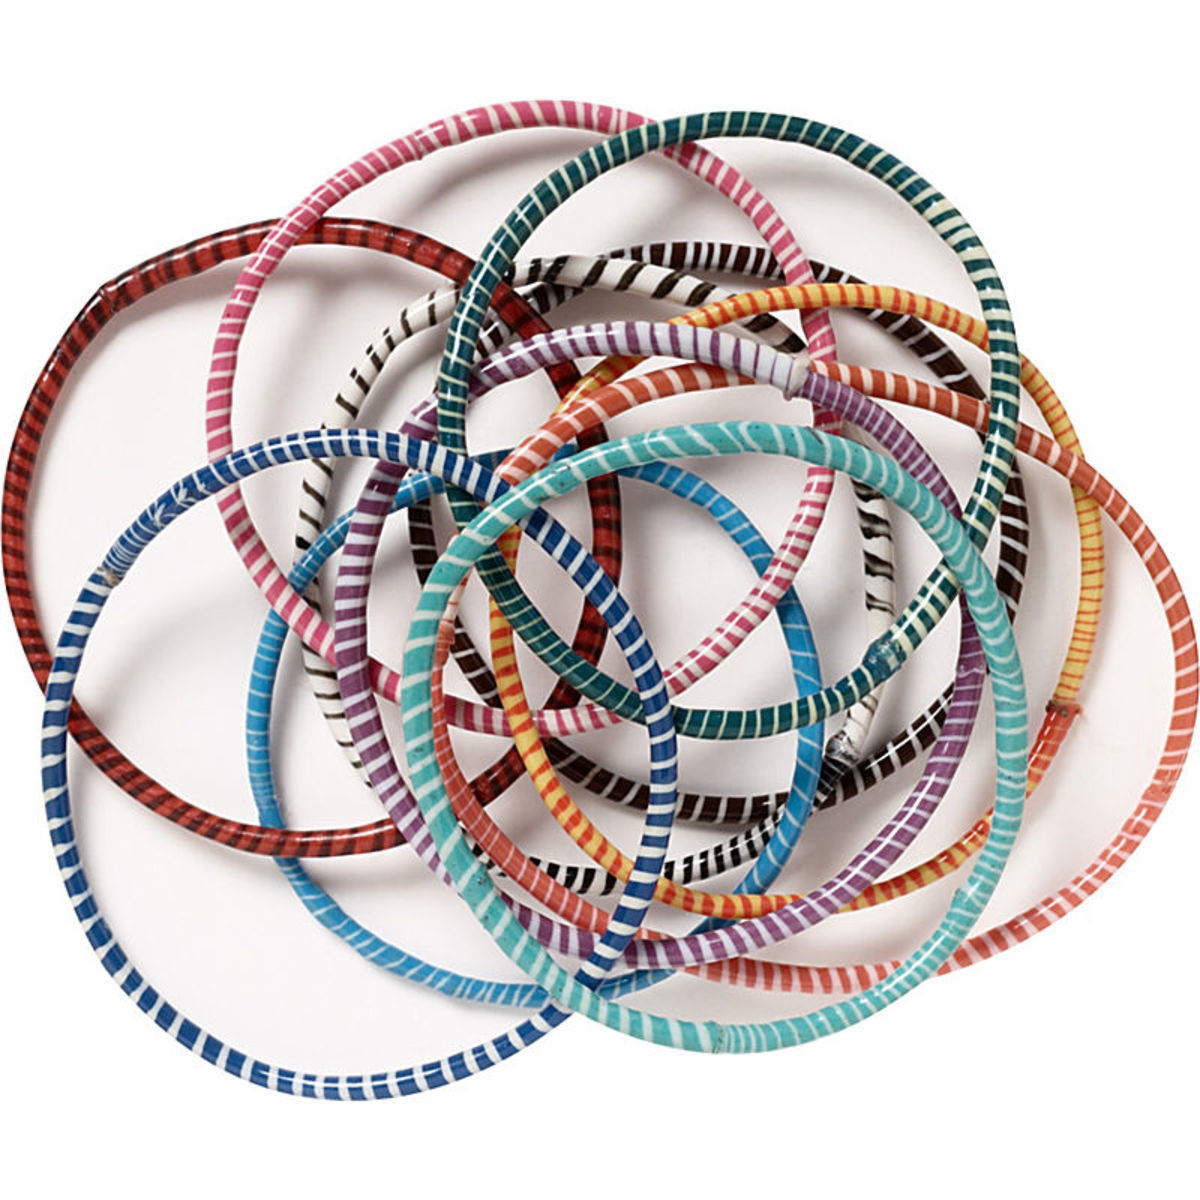 2013 Holiday Gift Guide - Hard to Shop for People - Flip Flop Bracelets - TodaysMama.com